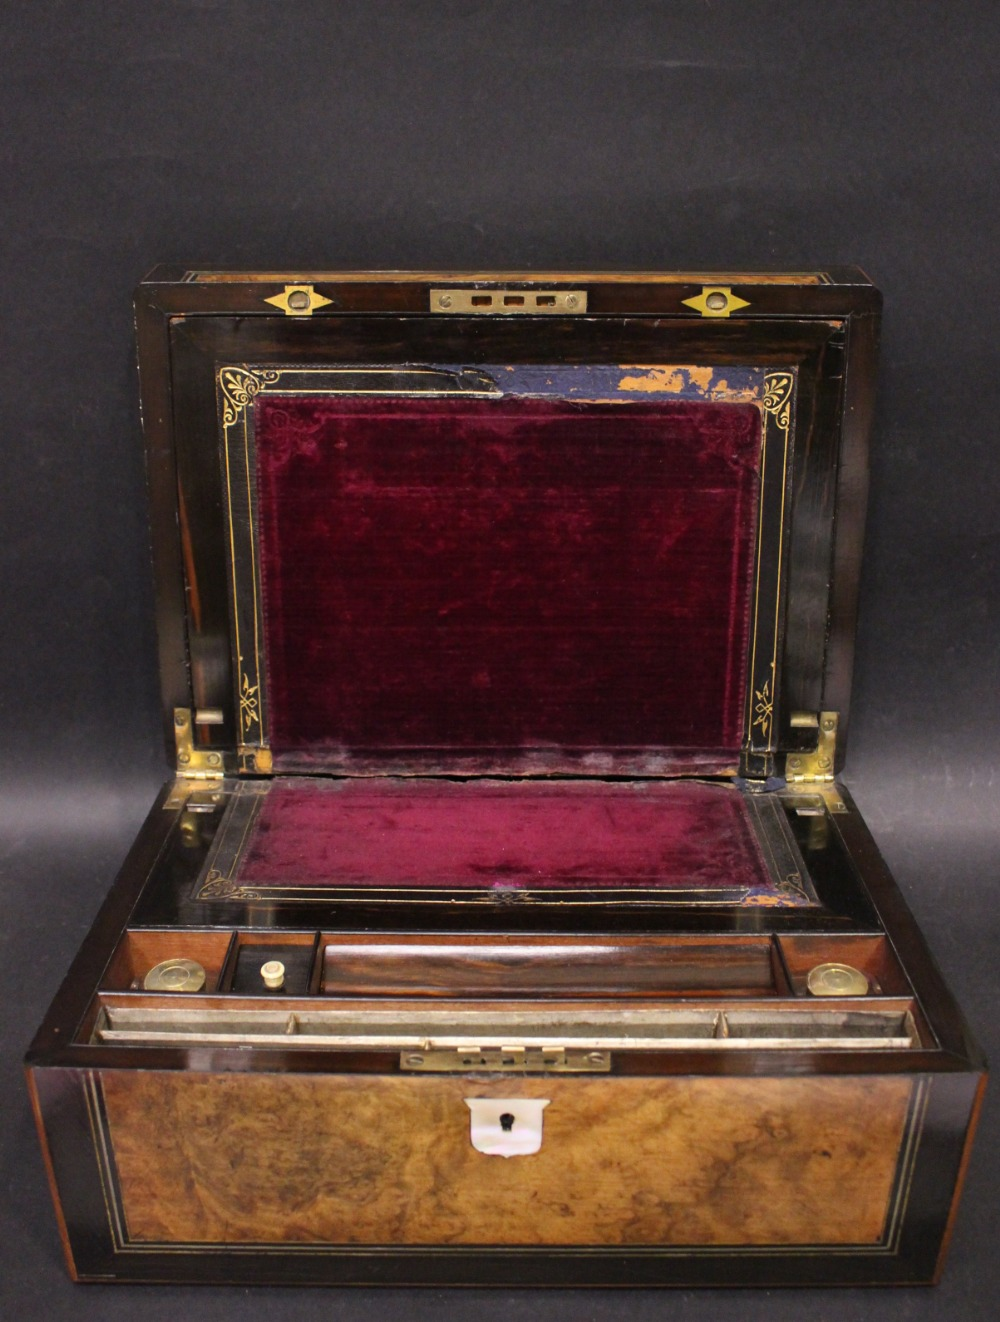 Lot 149 - A WALNUT & EBONISED INLAID WORK BOX with mother of pearl cartouche and keyplate, opens to reveal